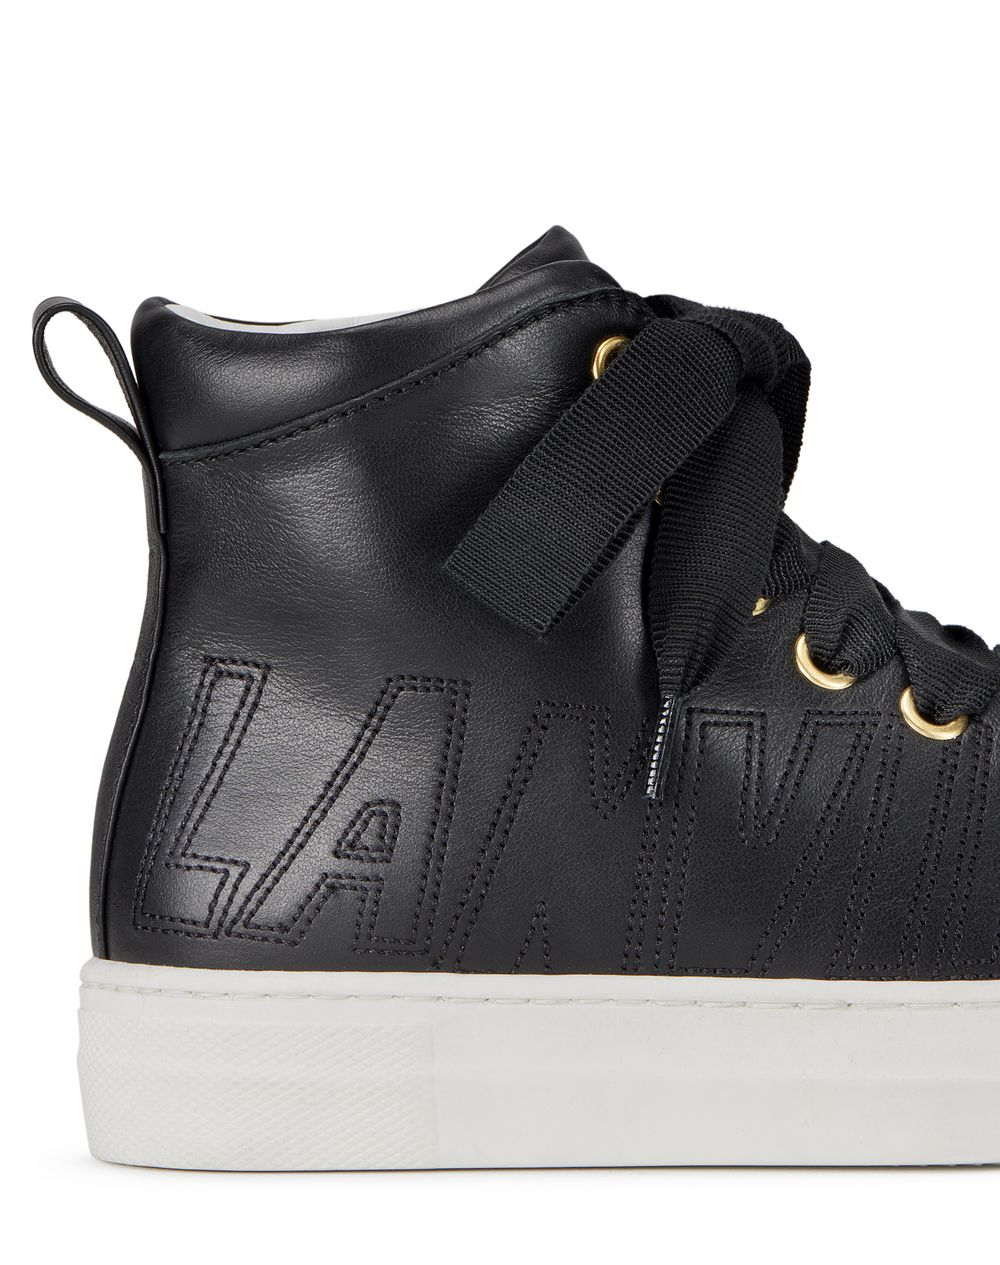 BLACK HIGH-TOP SNEAKERS - Lanvin